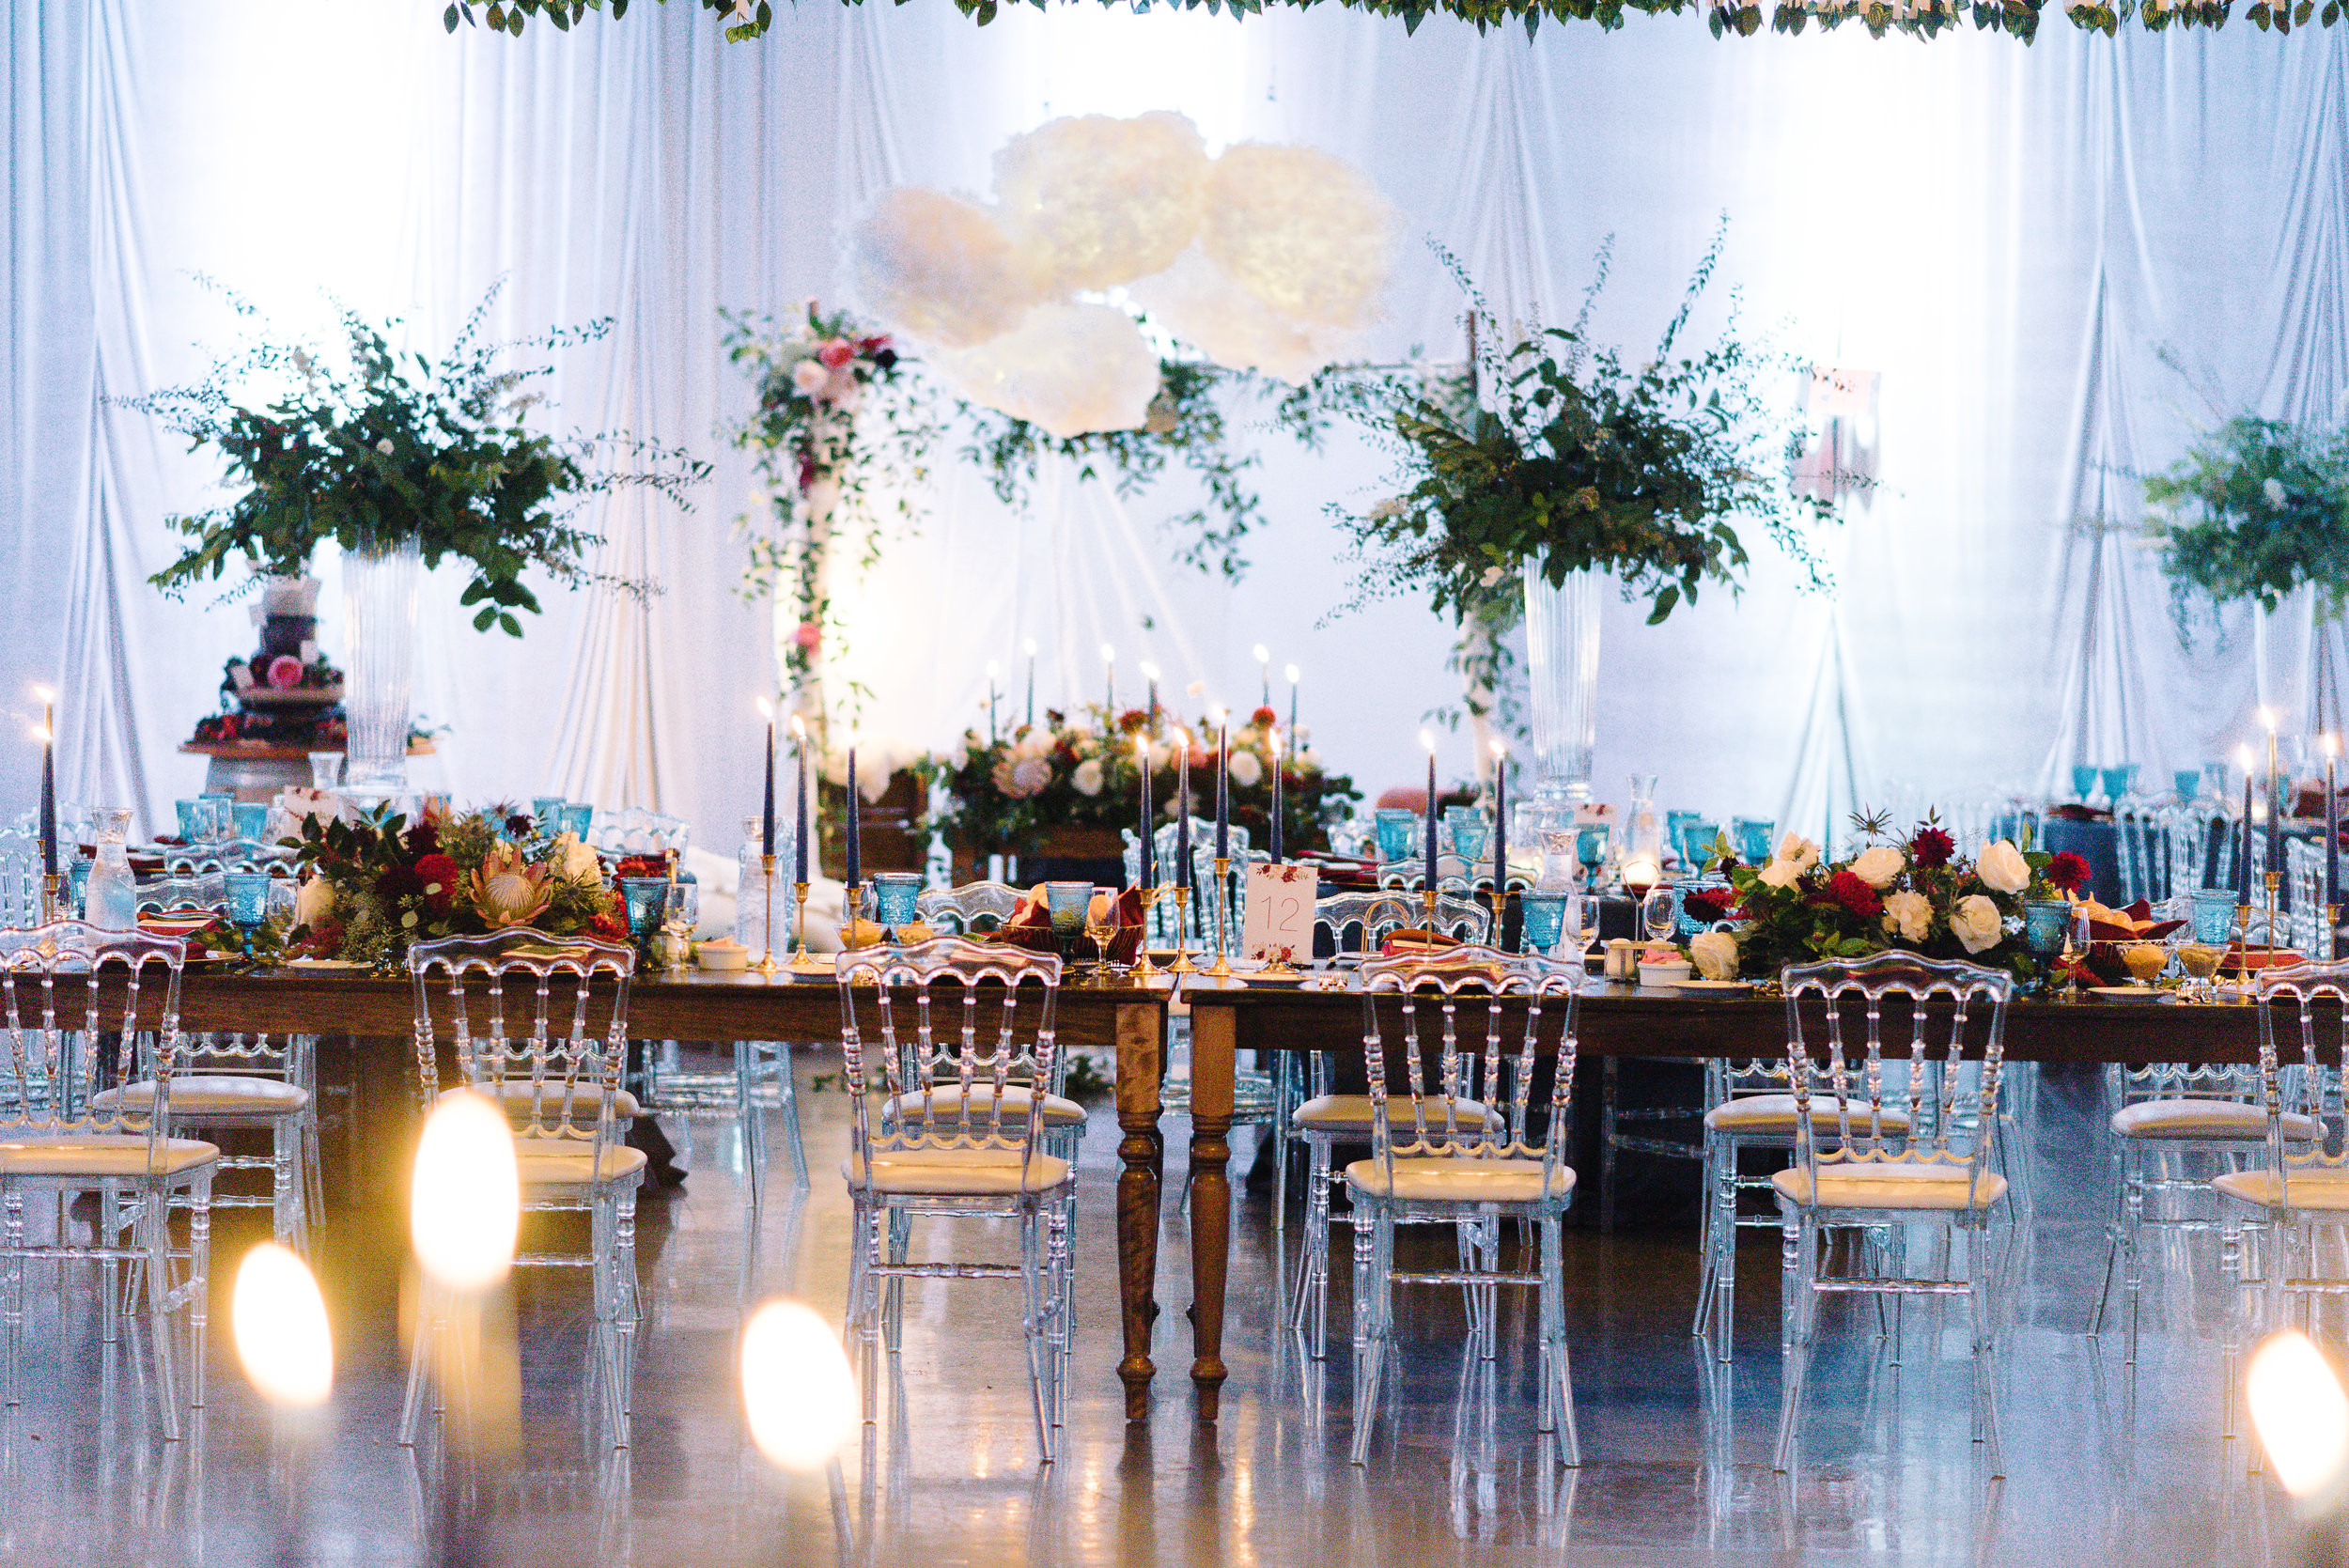 Stunning Rustic elegant wedding reception decor